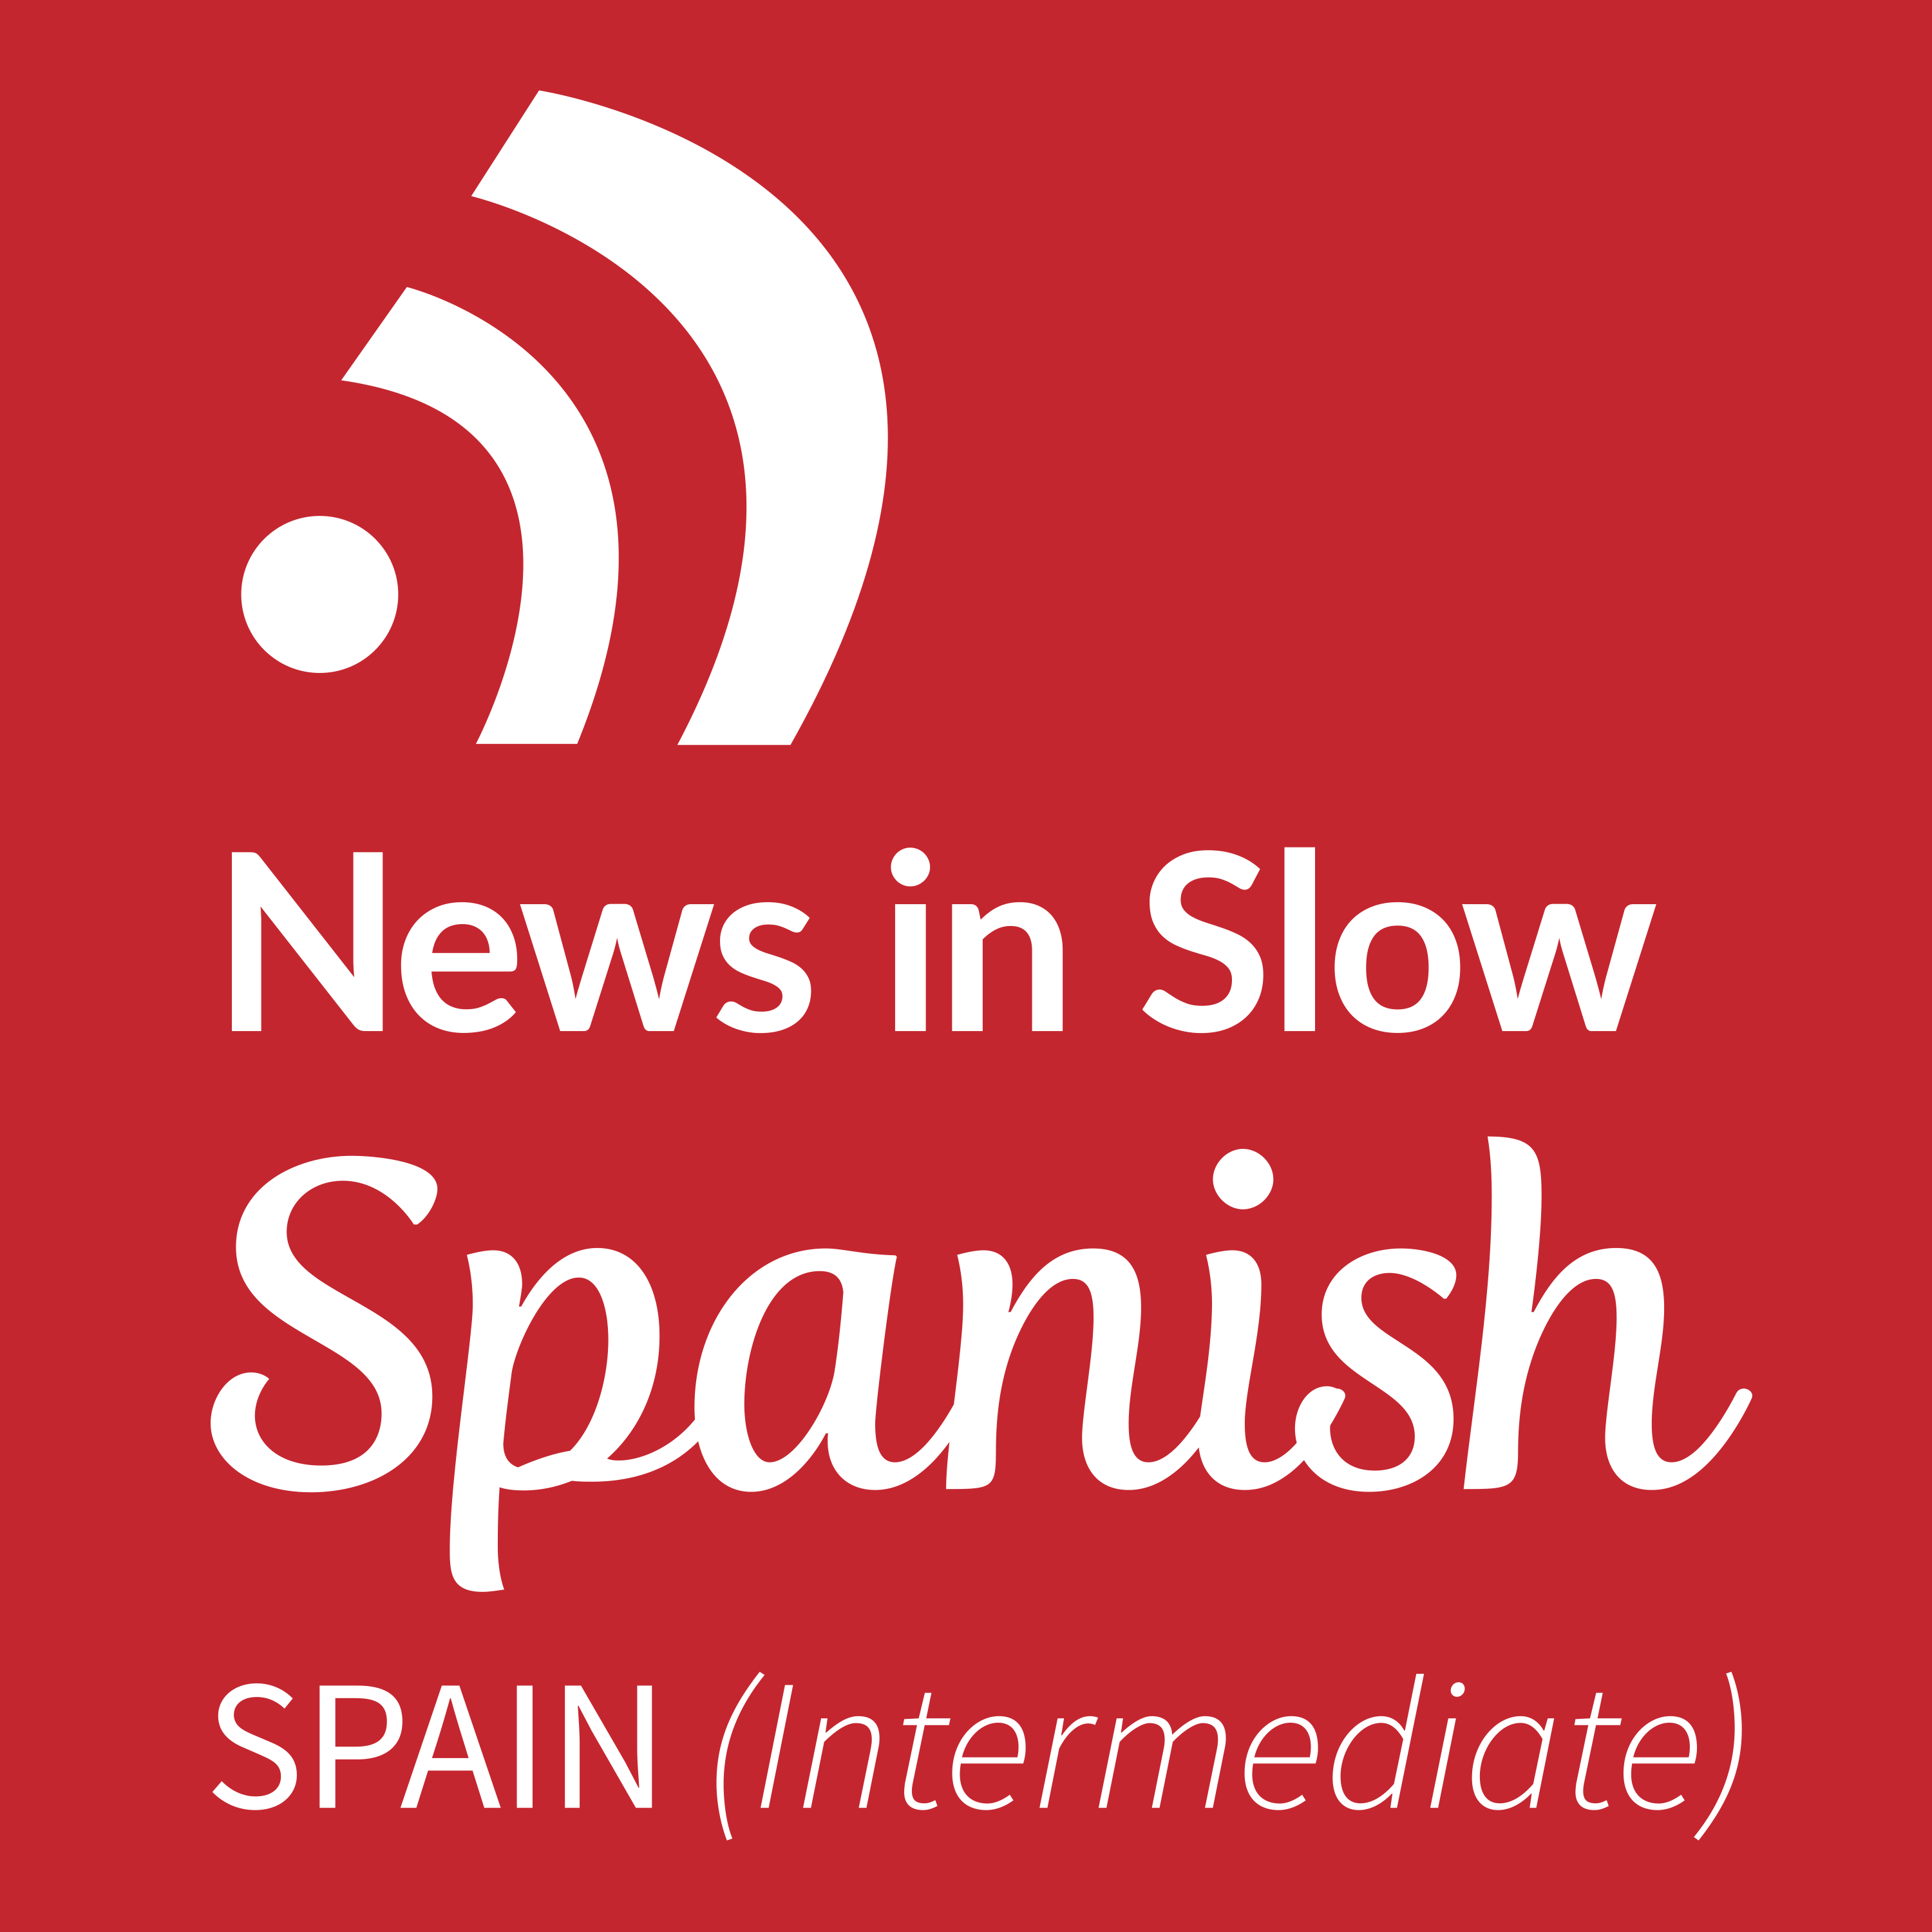 News in Slow Spanish - #414 - Weekly language learning show with discussion of current events